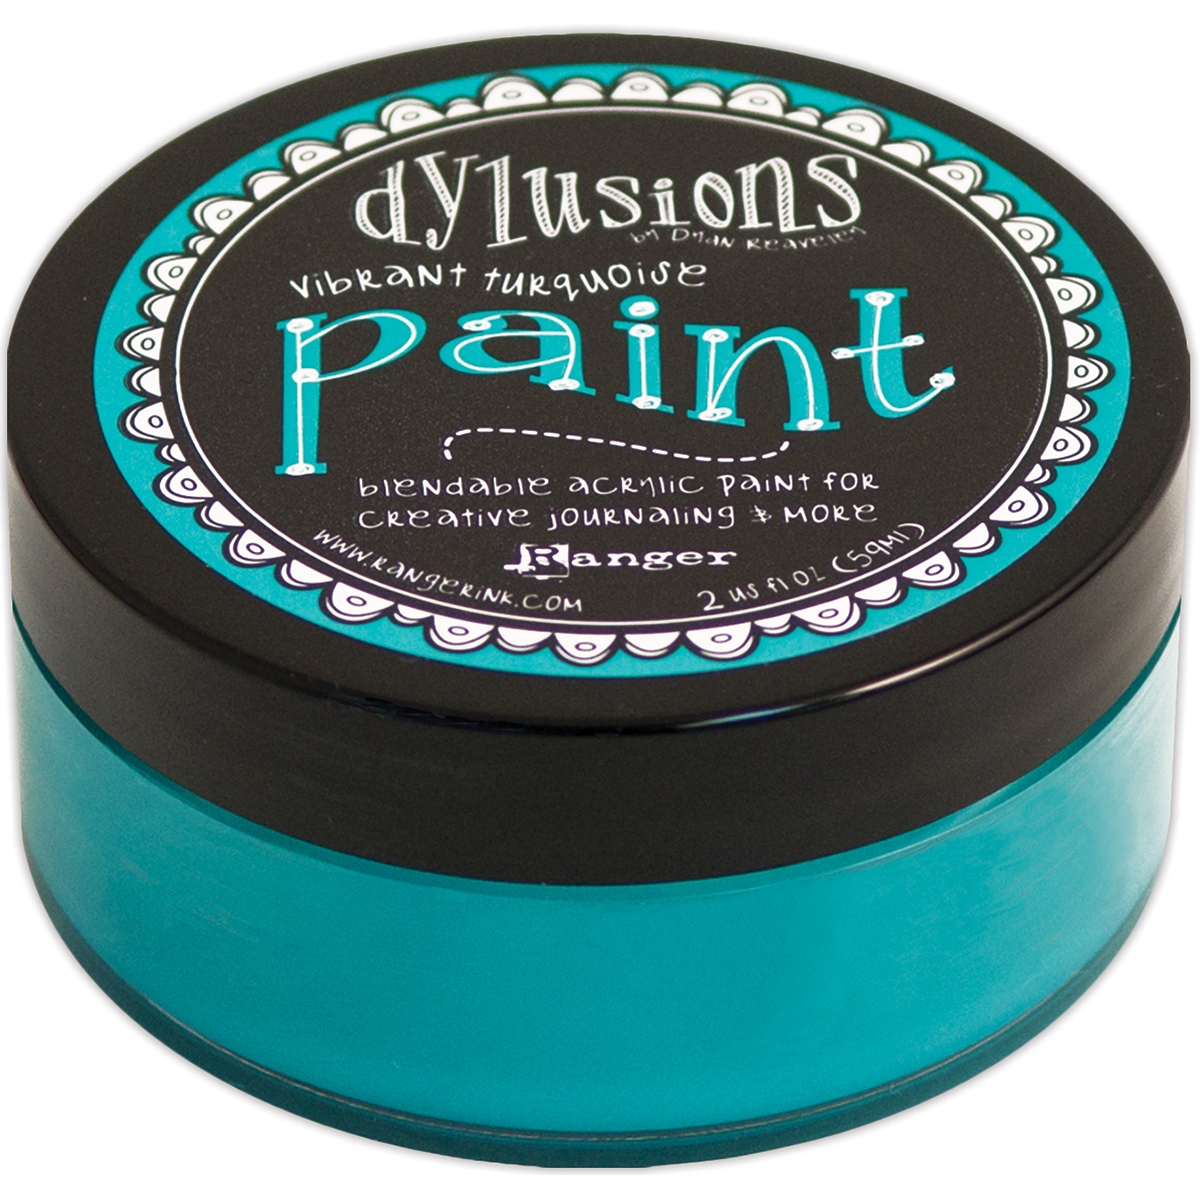 Dylusions By Dyan Reaveley Blendable Acrylic Paint 2oz-Vibrant Turquoise